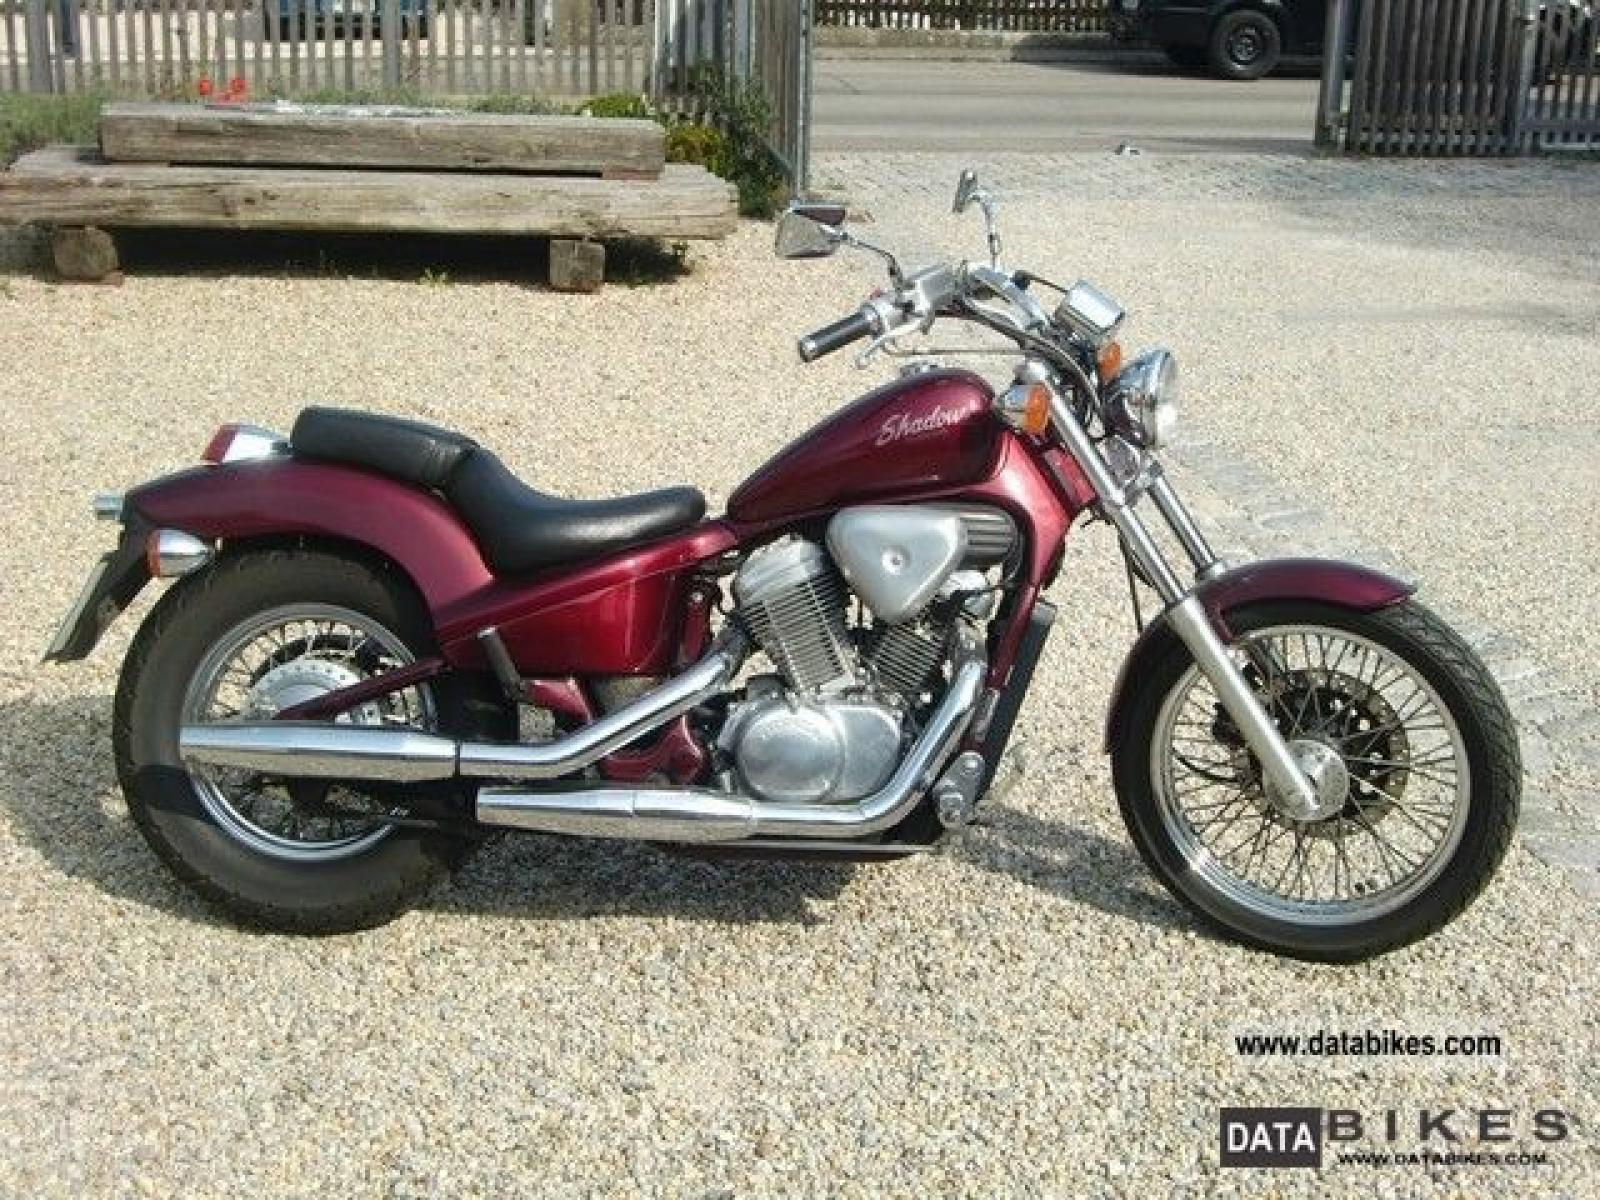 1989 Honda Shadow Motorcycle